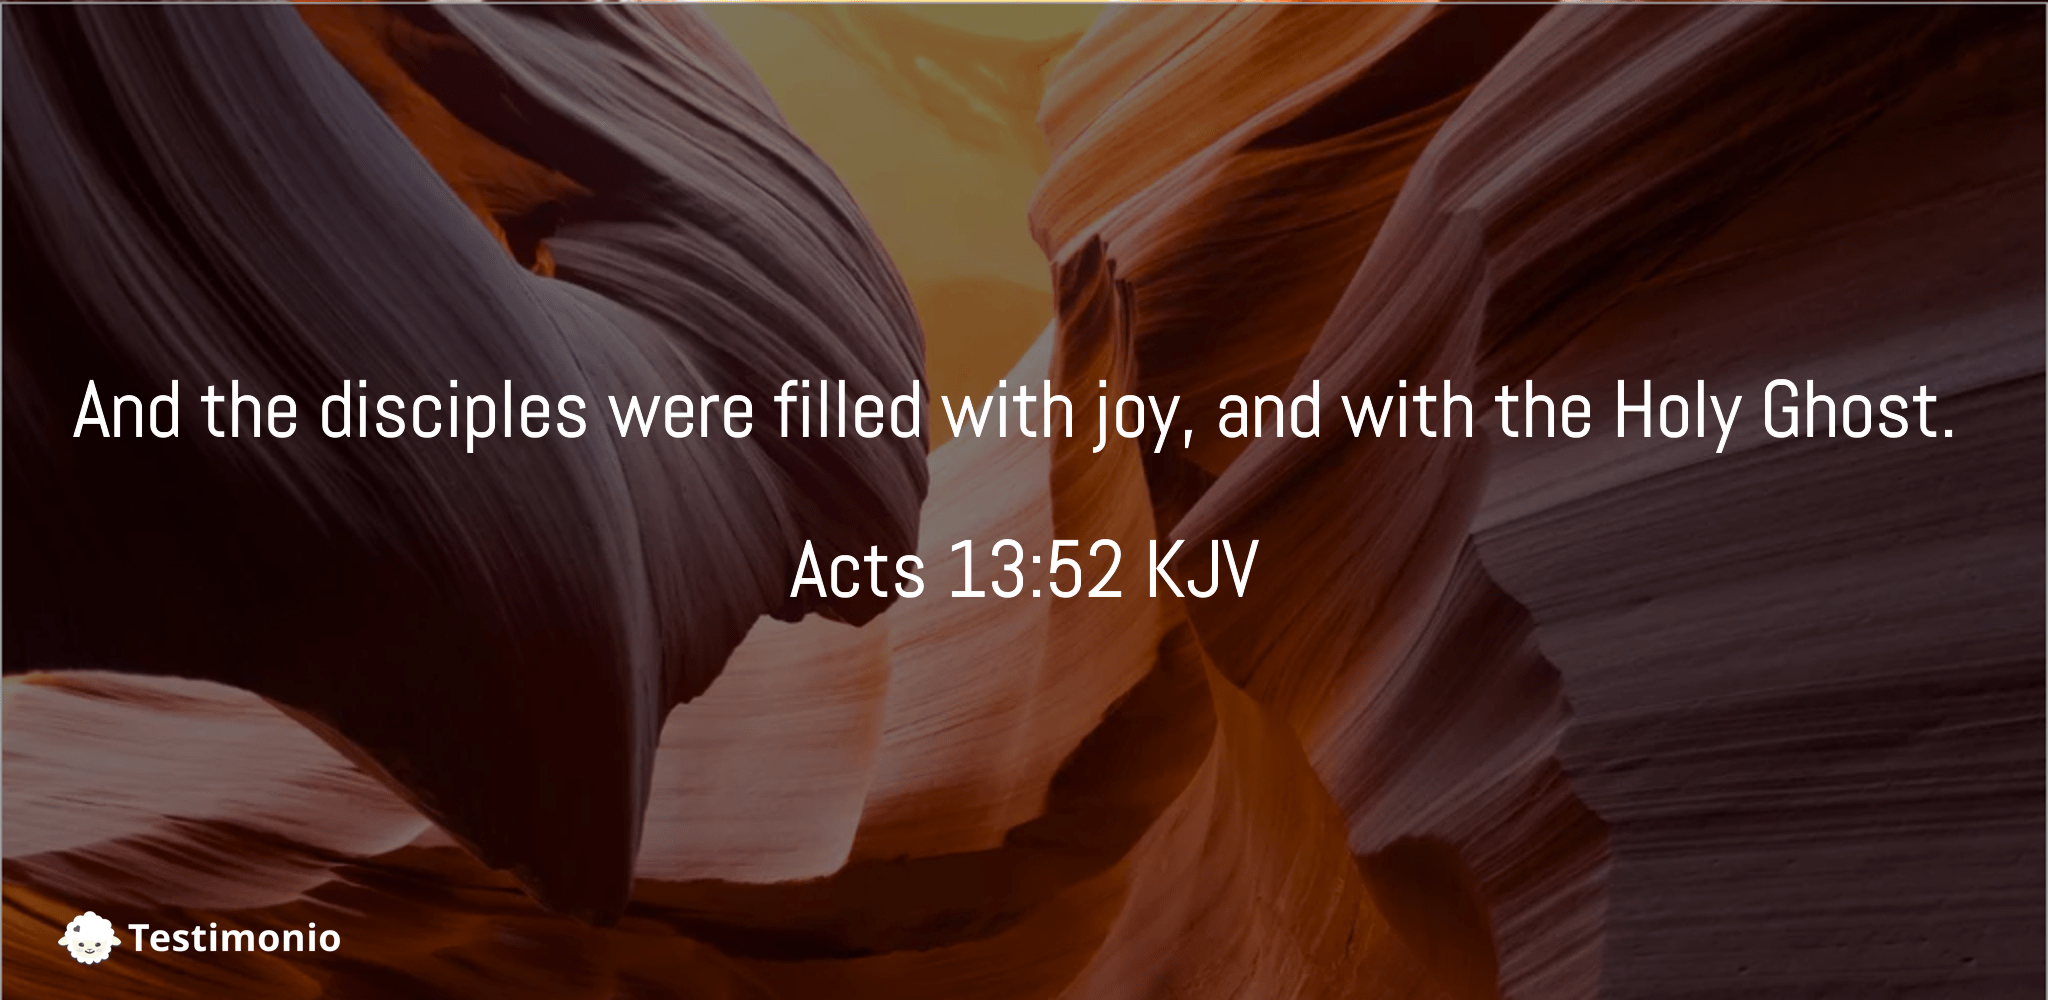 Acts 13:52